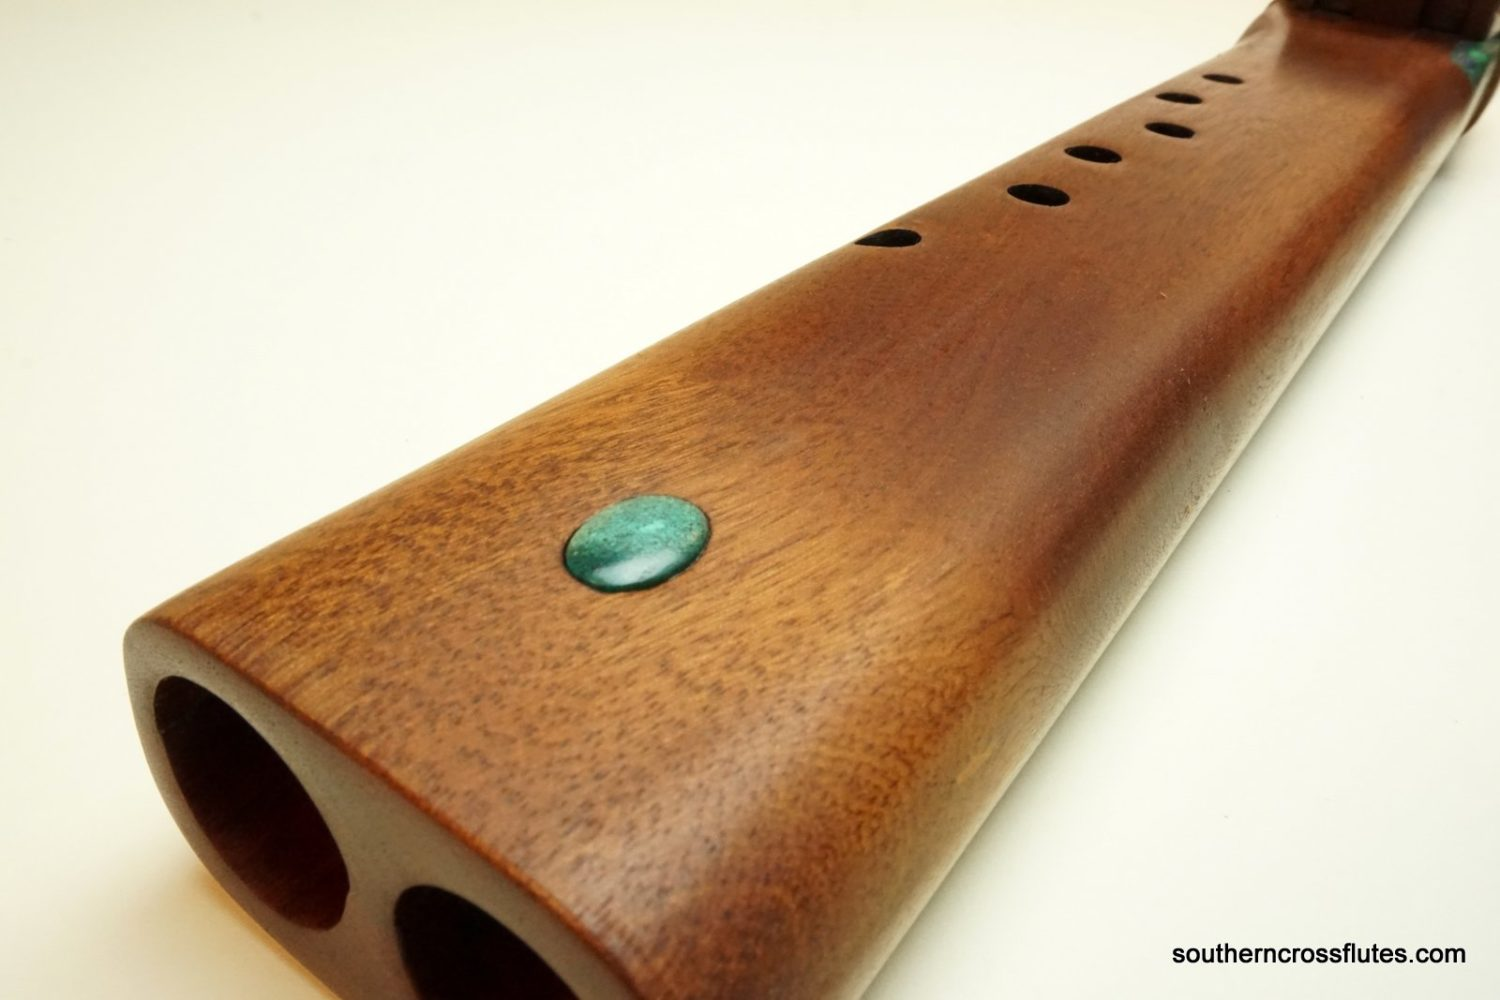 Australian Rosewood - Drone Flute - Key of G minor